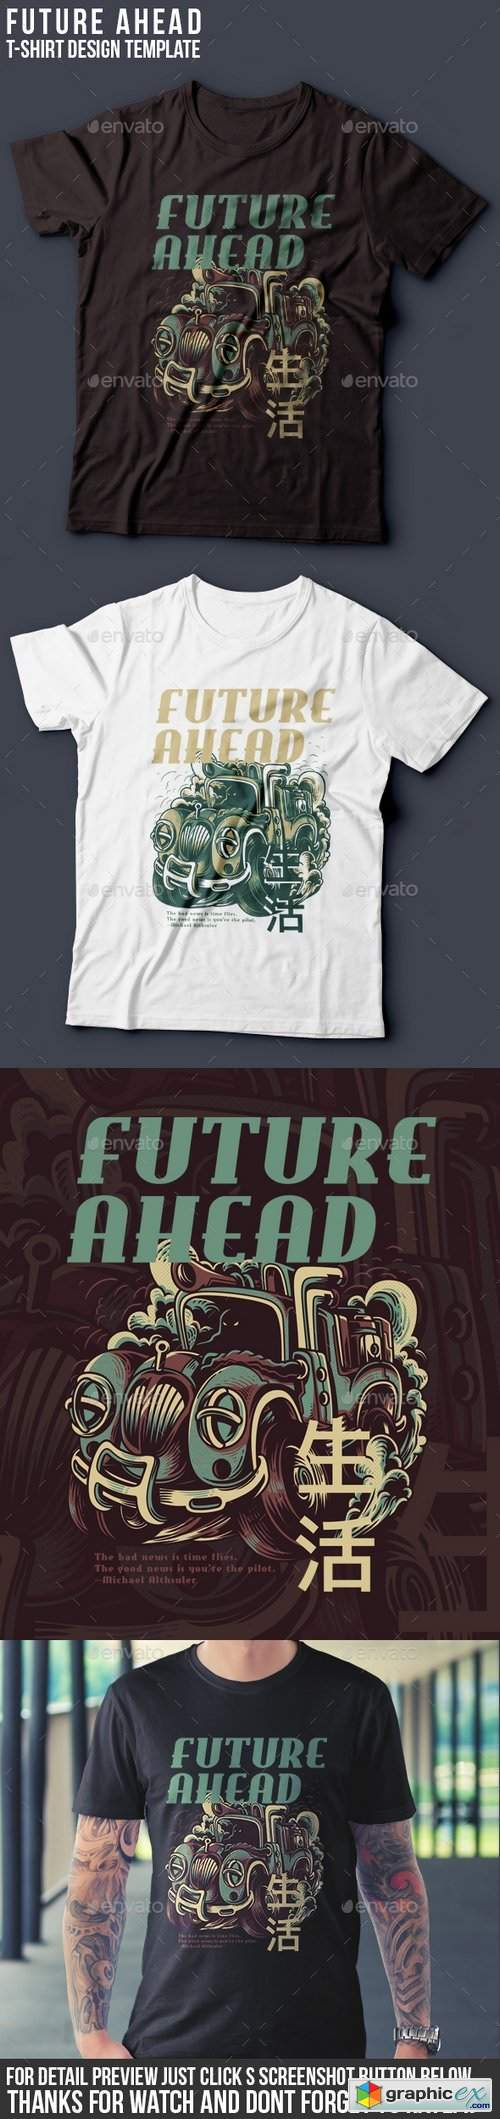 Future Ahead T-Shirt Design